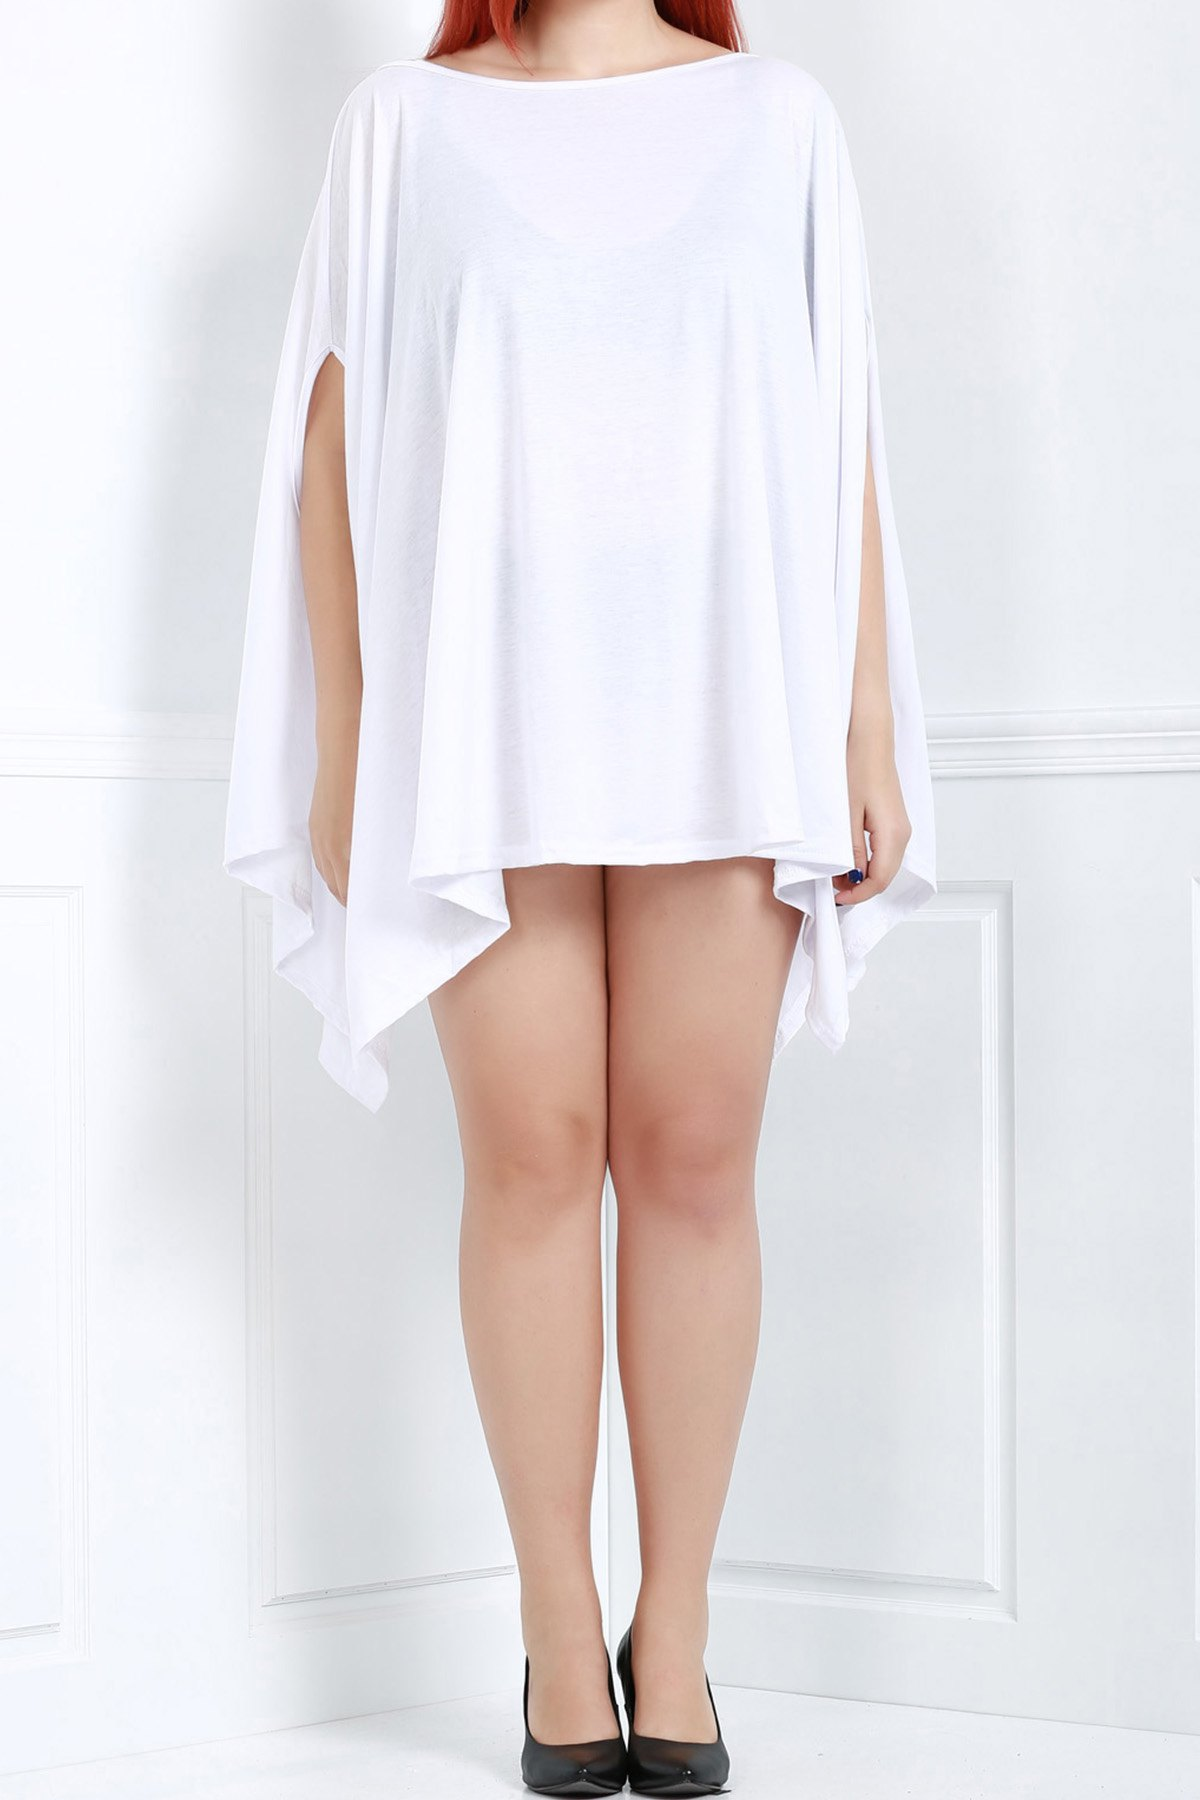 Hot Asymmetric Loose Tunic Casual Dress